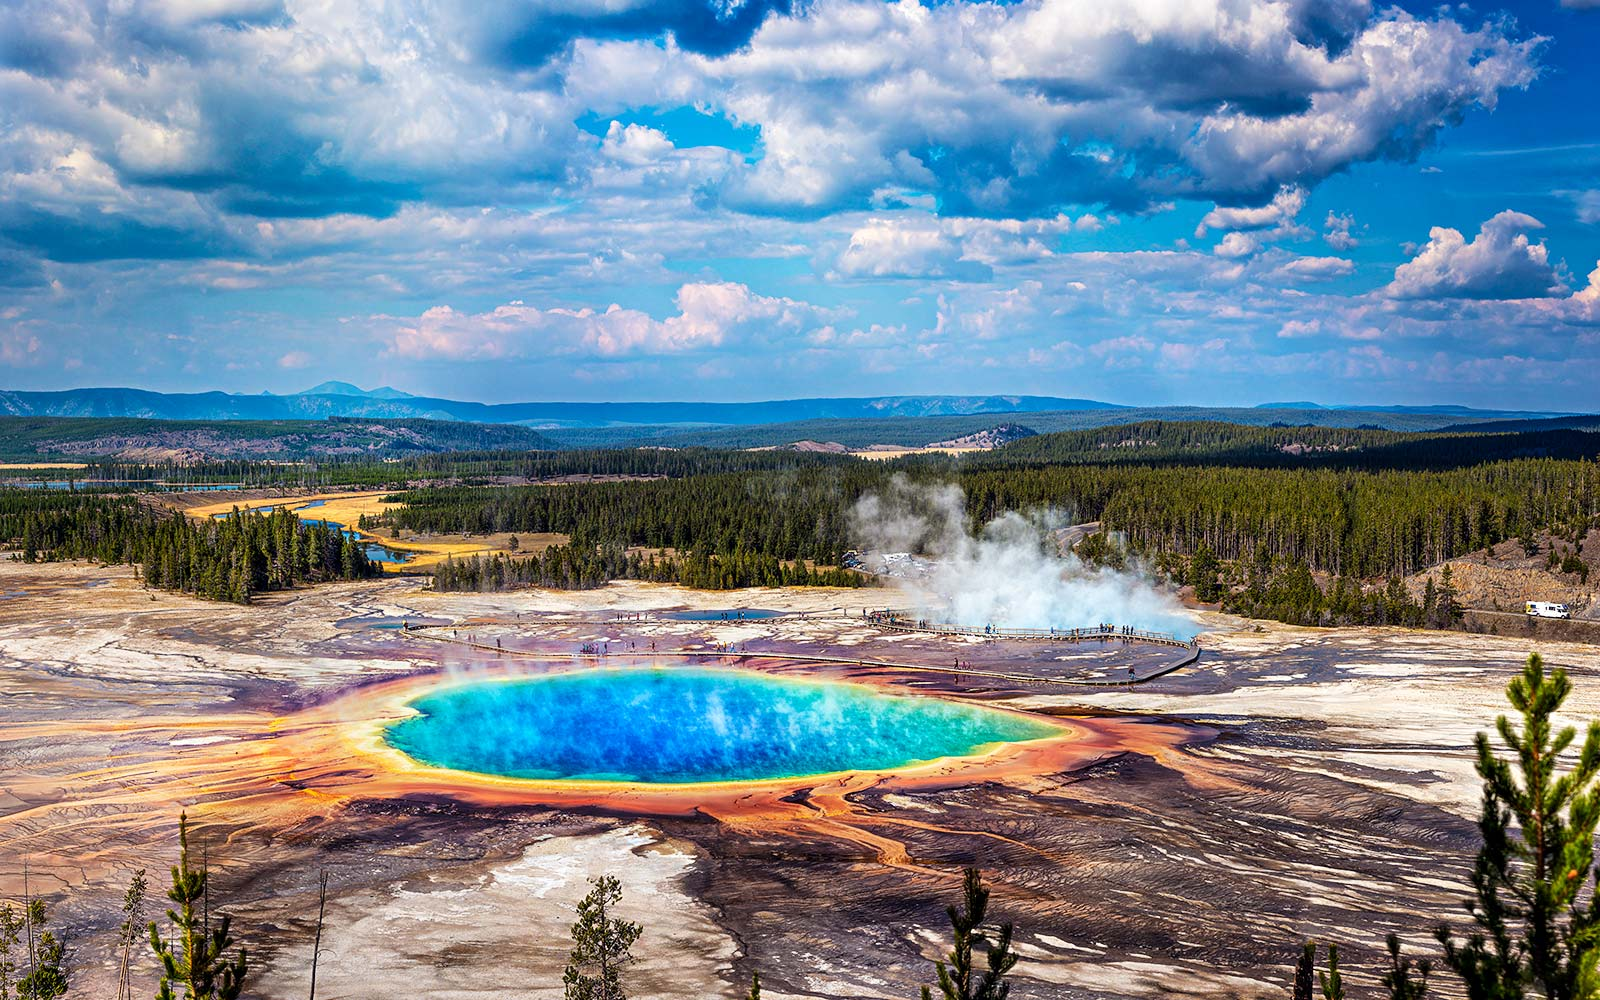 21-year-old Severely Burned After Falling Into Hot Springs at Yellowstone